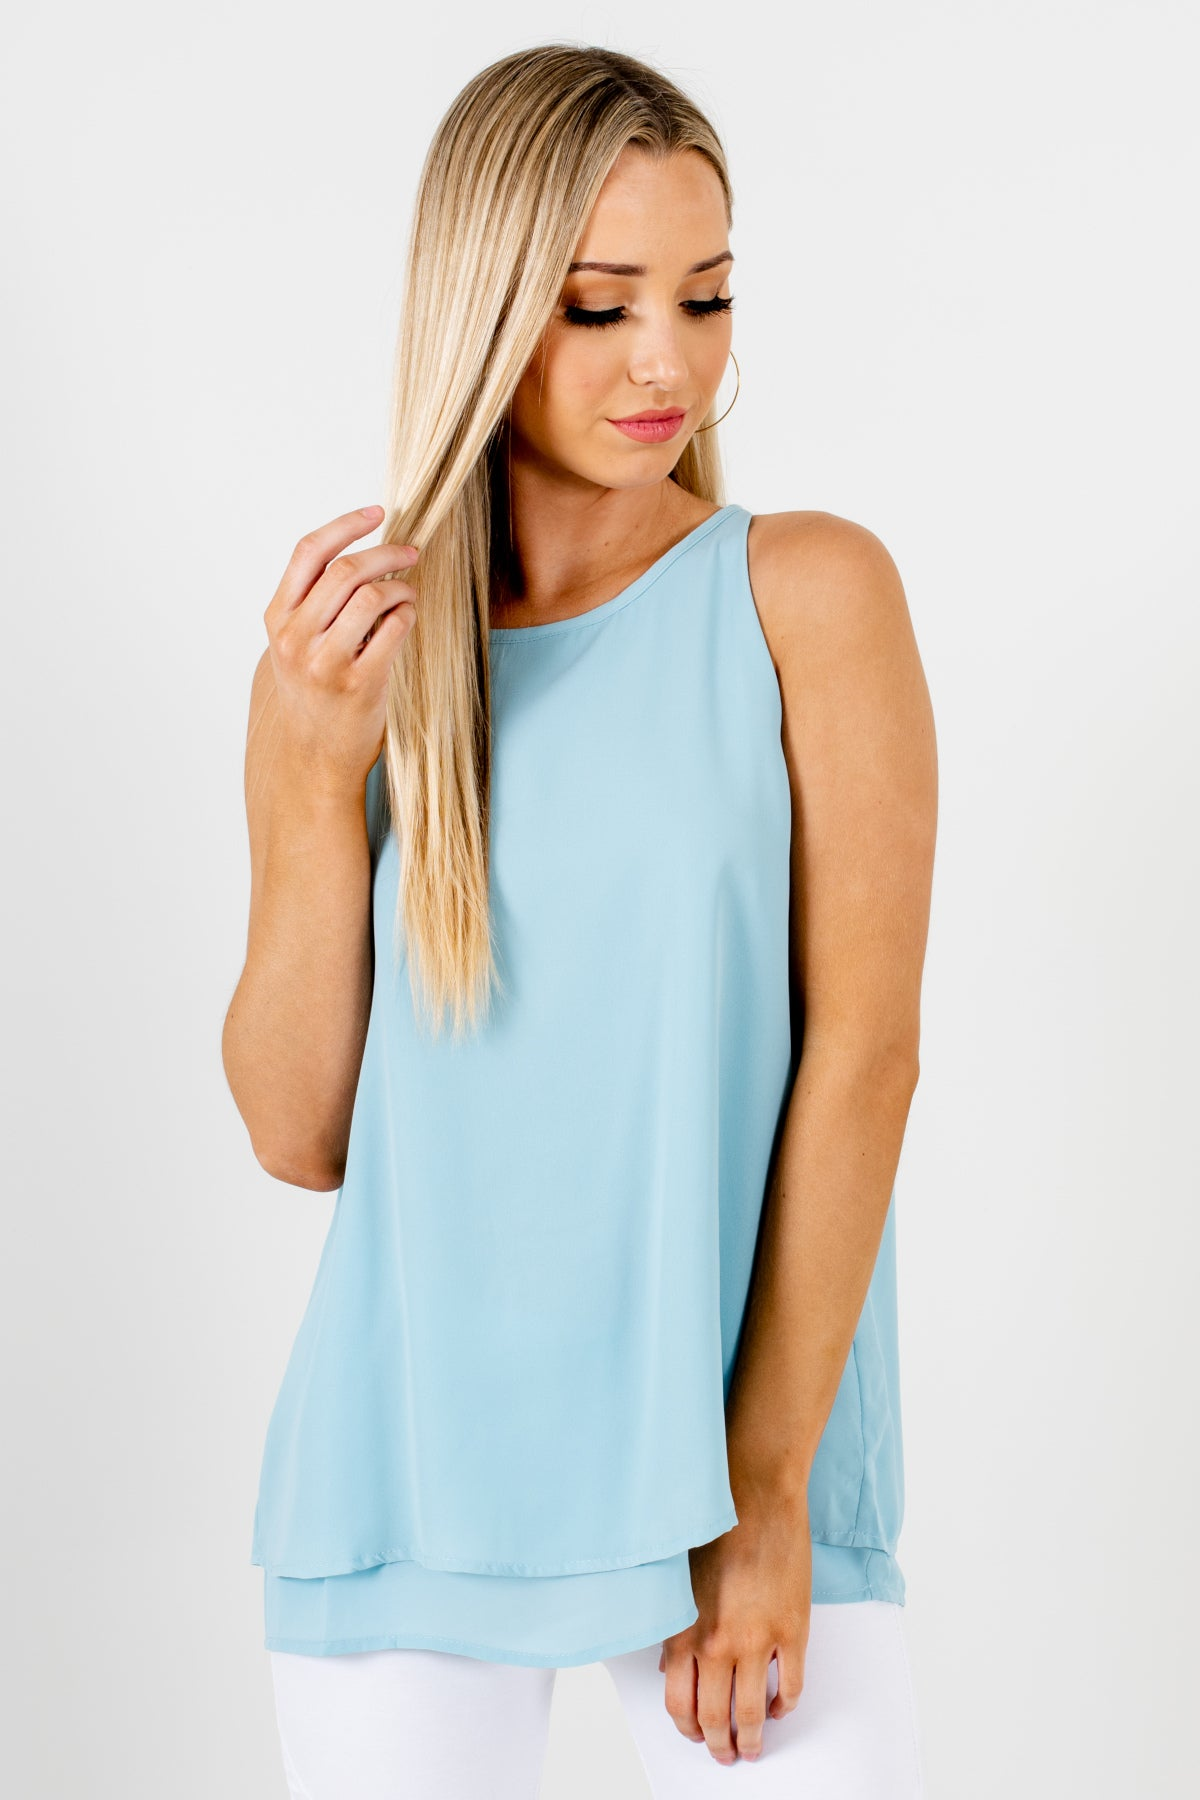 Light Blue Tank Style Double Layered Blouses Womens Business Casual